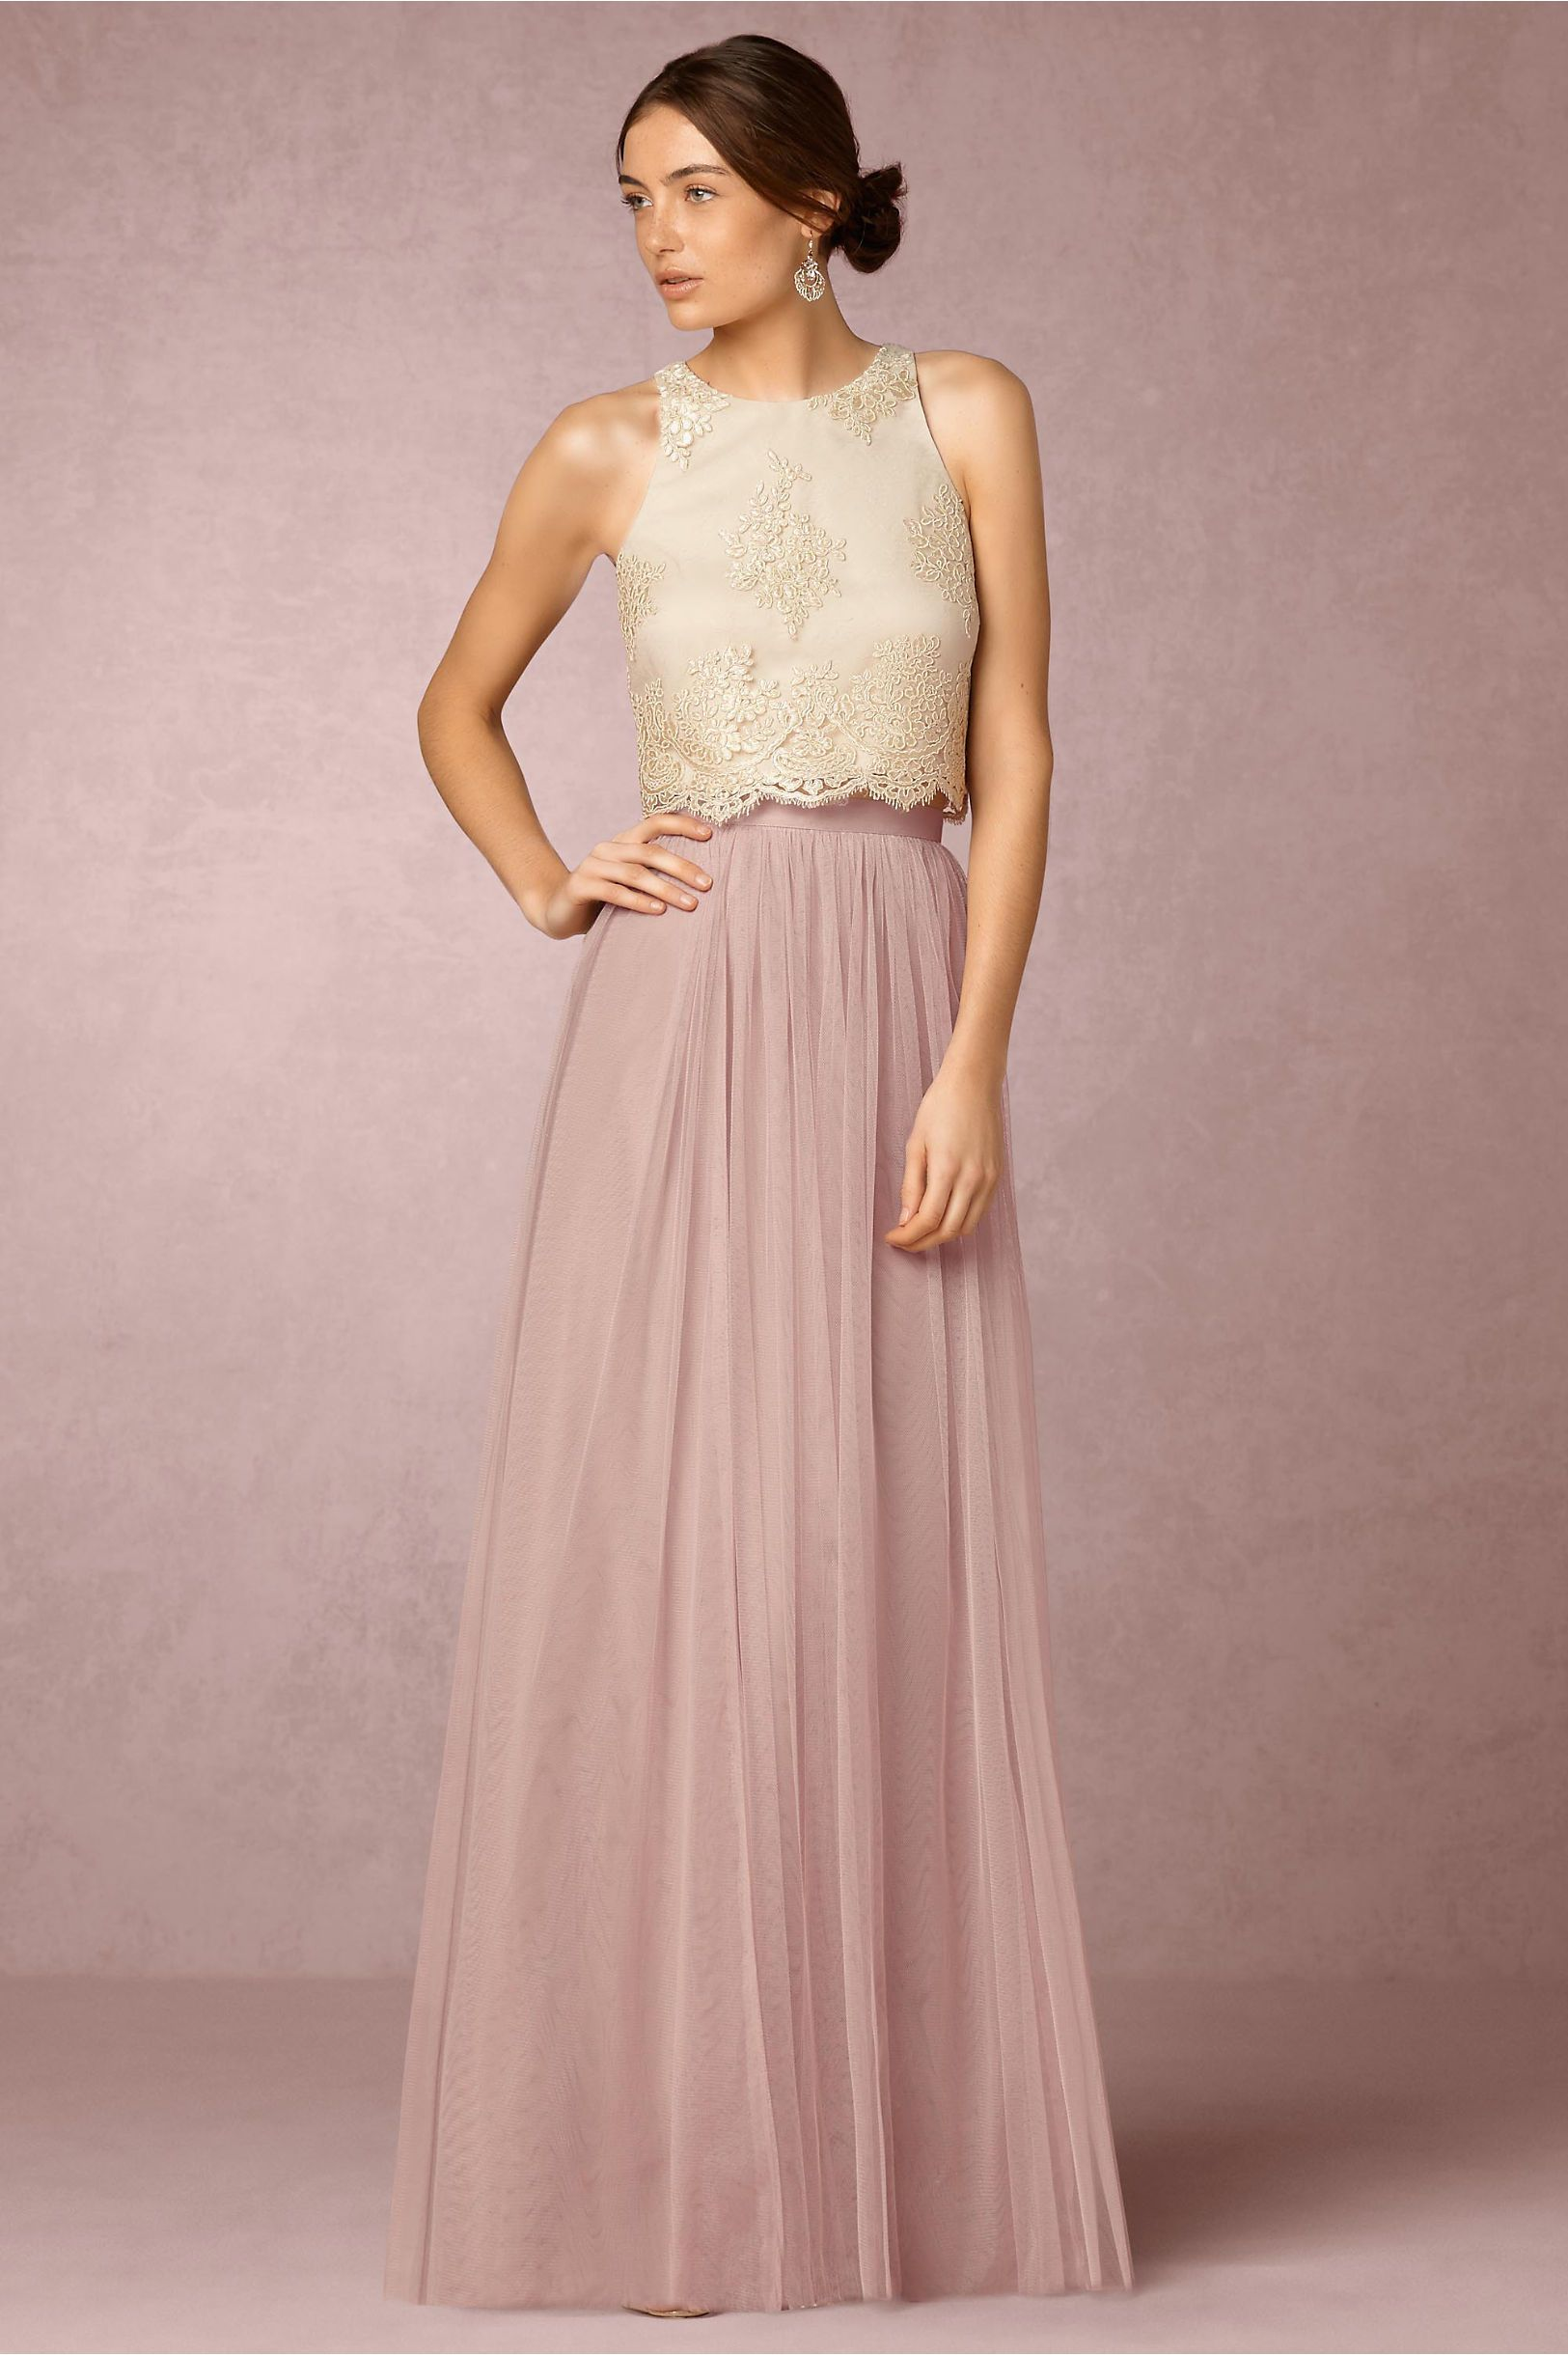 BHLDN Bea Top & Louise Tulle Skirt in Bridal Party | BHLDN | bEaChY ...